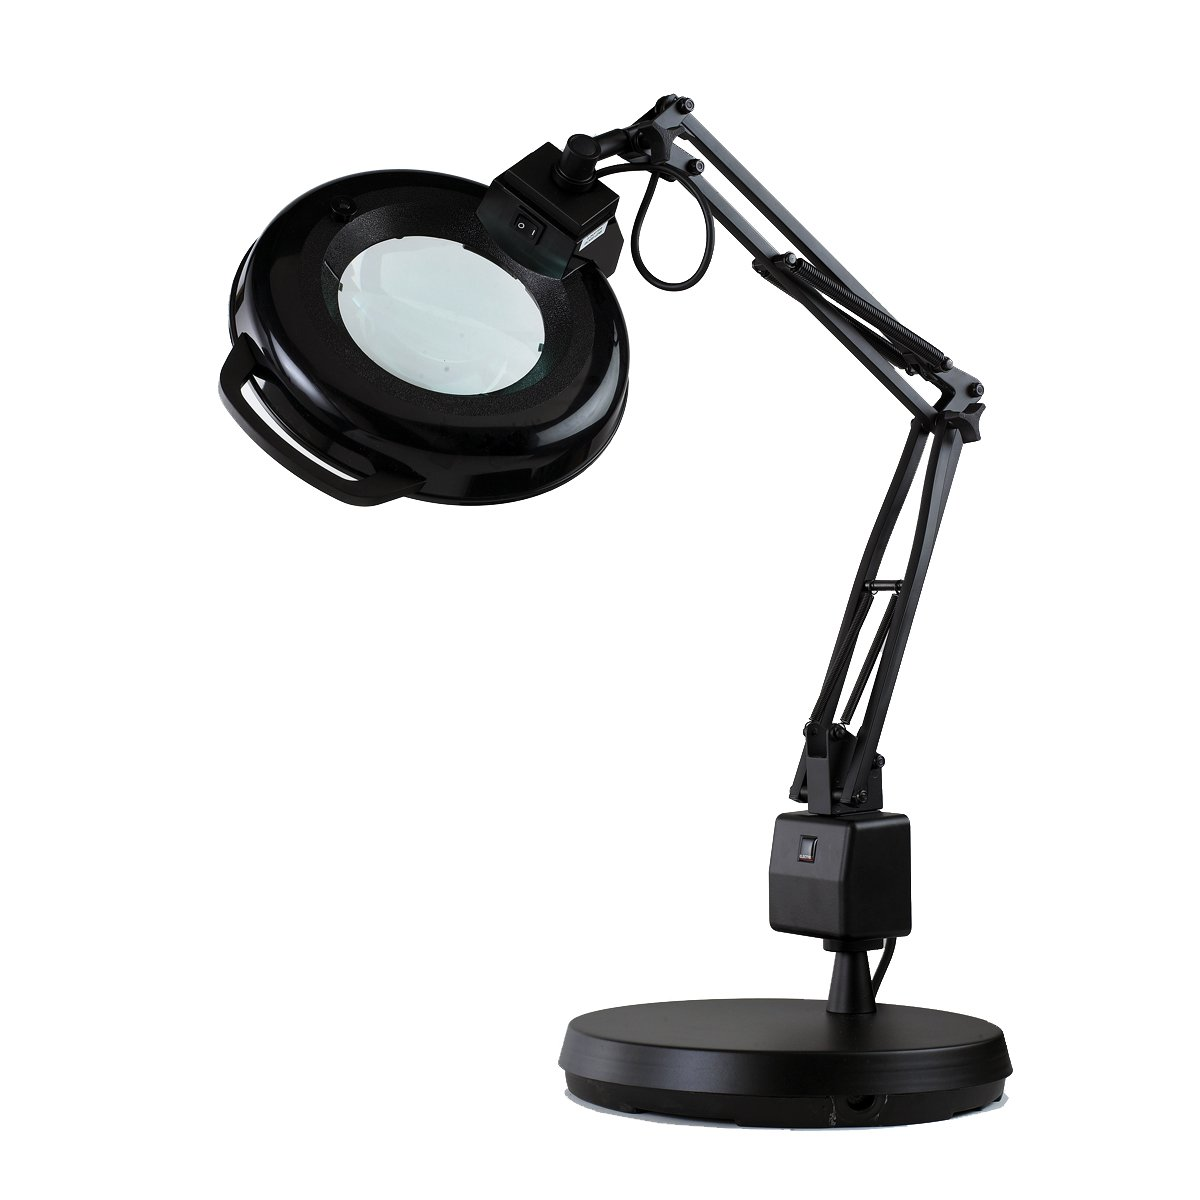 Electrix 7125 BLACK Magnifier Lamp, Fluorescent, Weighted Base Mounting, 3-Diopter, 30